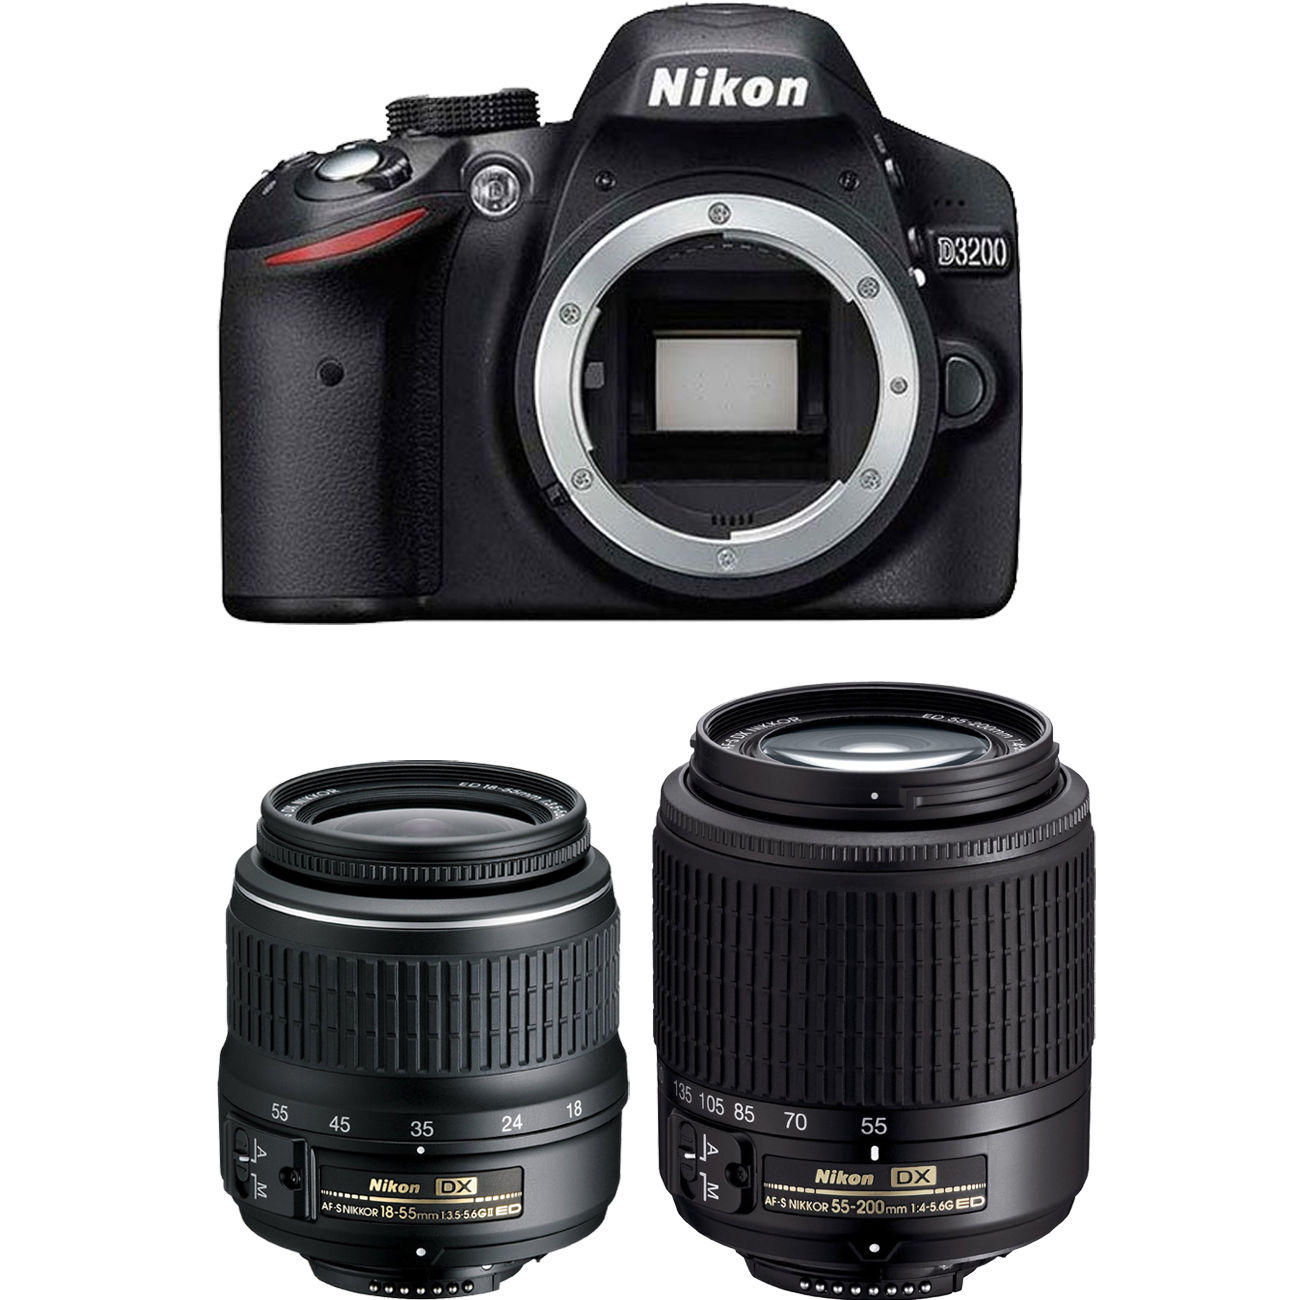 $389.99 Nikon D3200 DSLR Camera with 18-55mm VR II and 55-200mm VR II Lenses